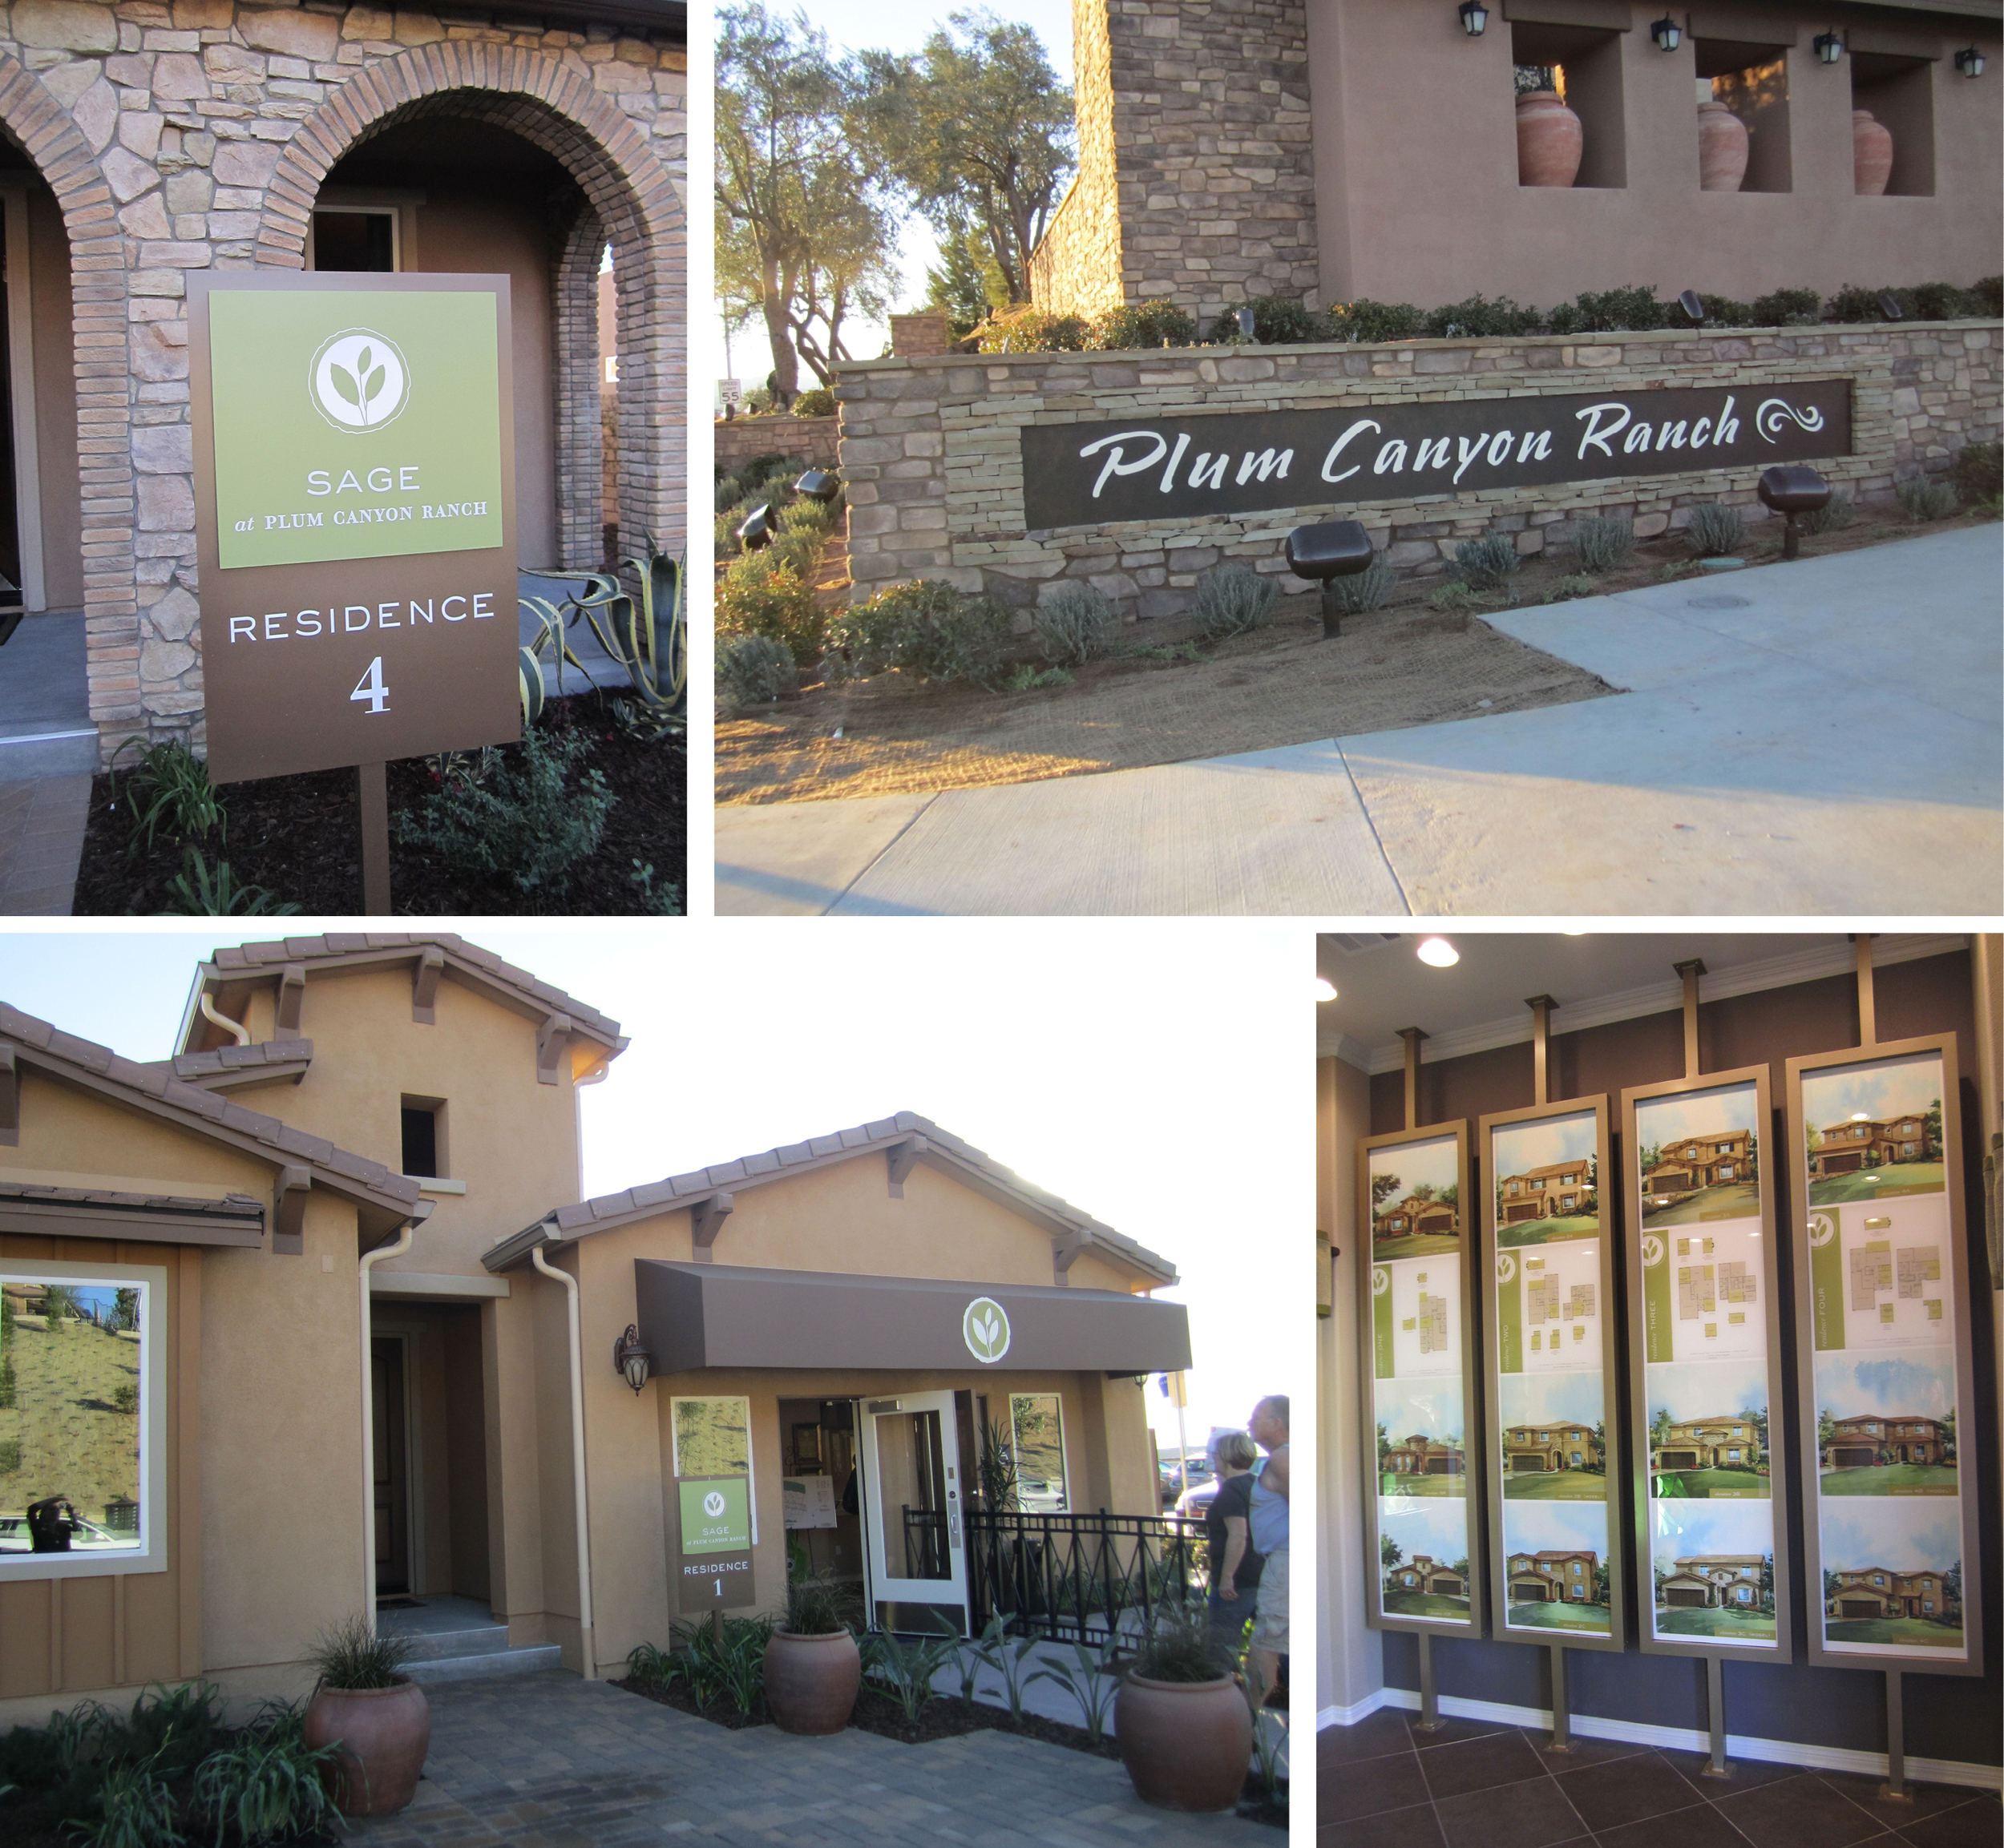 Plum Canyon Ranch Neighborhood and Gallery Signage